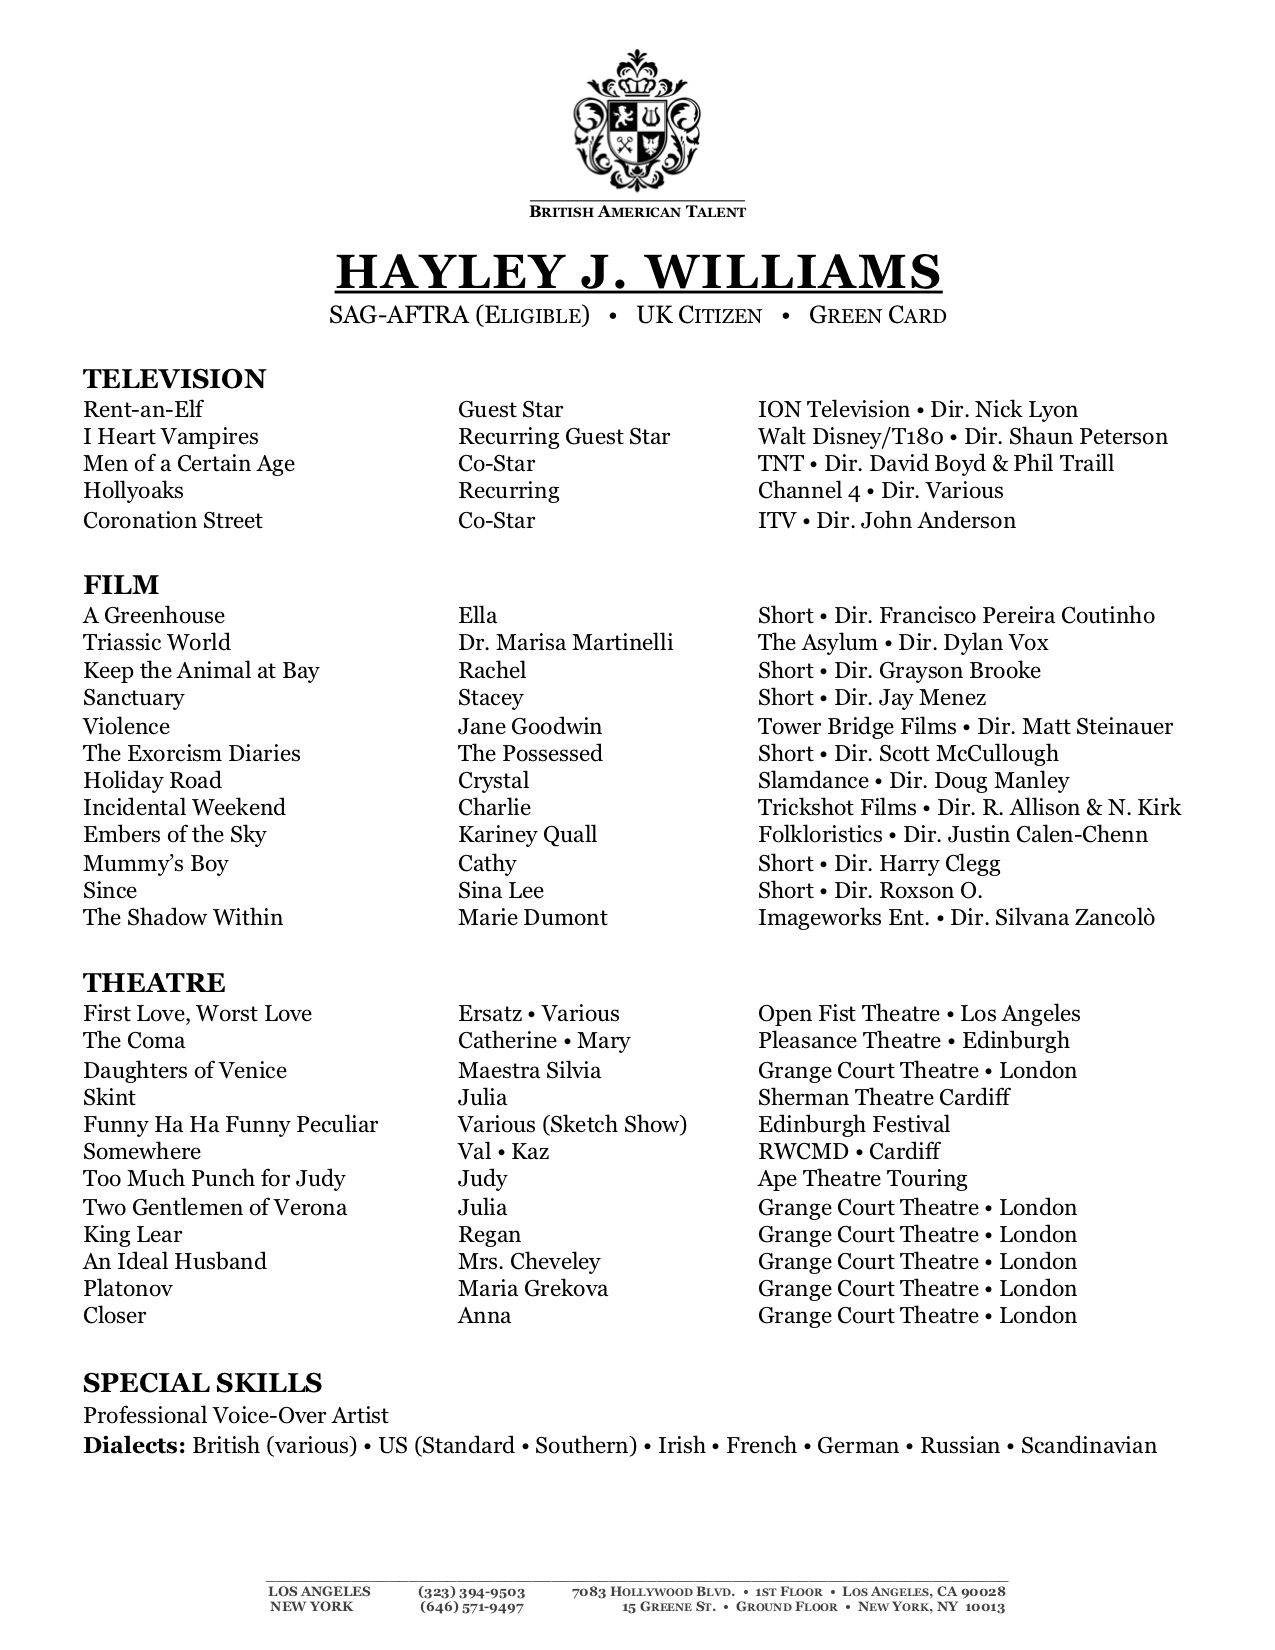 Hayley J. Williams Resume.jpg